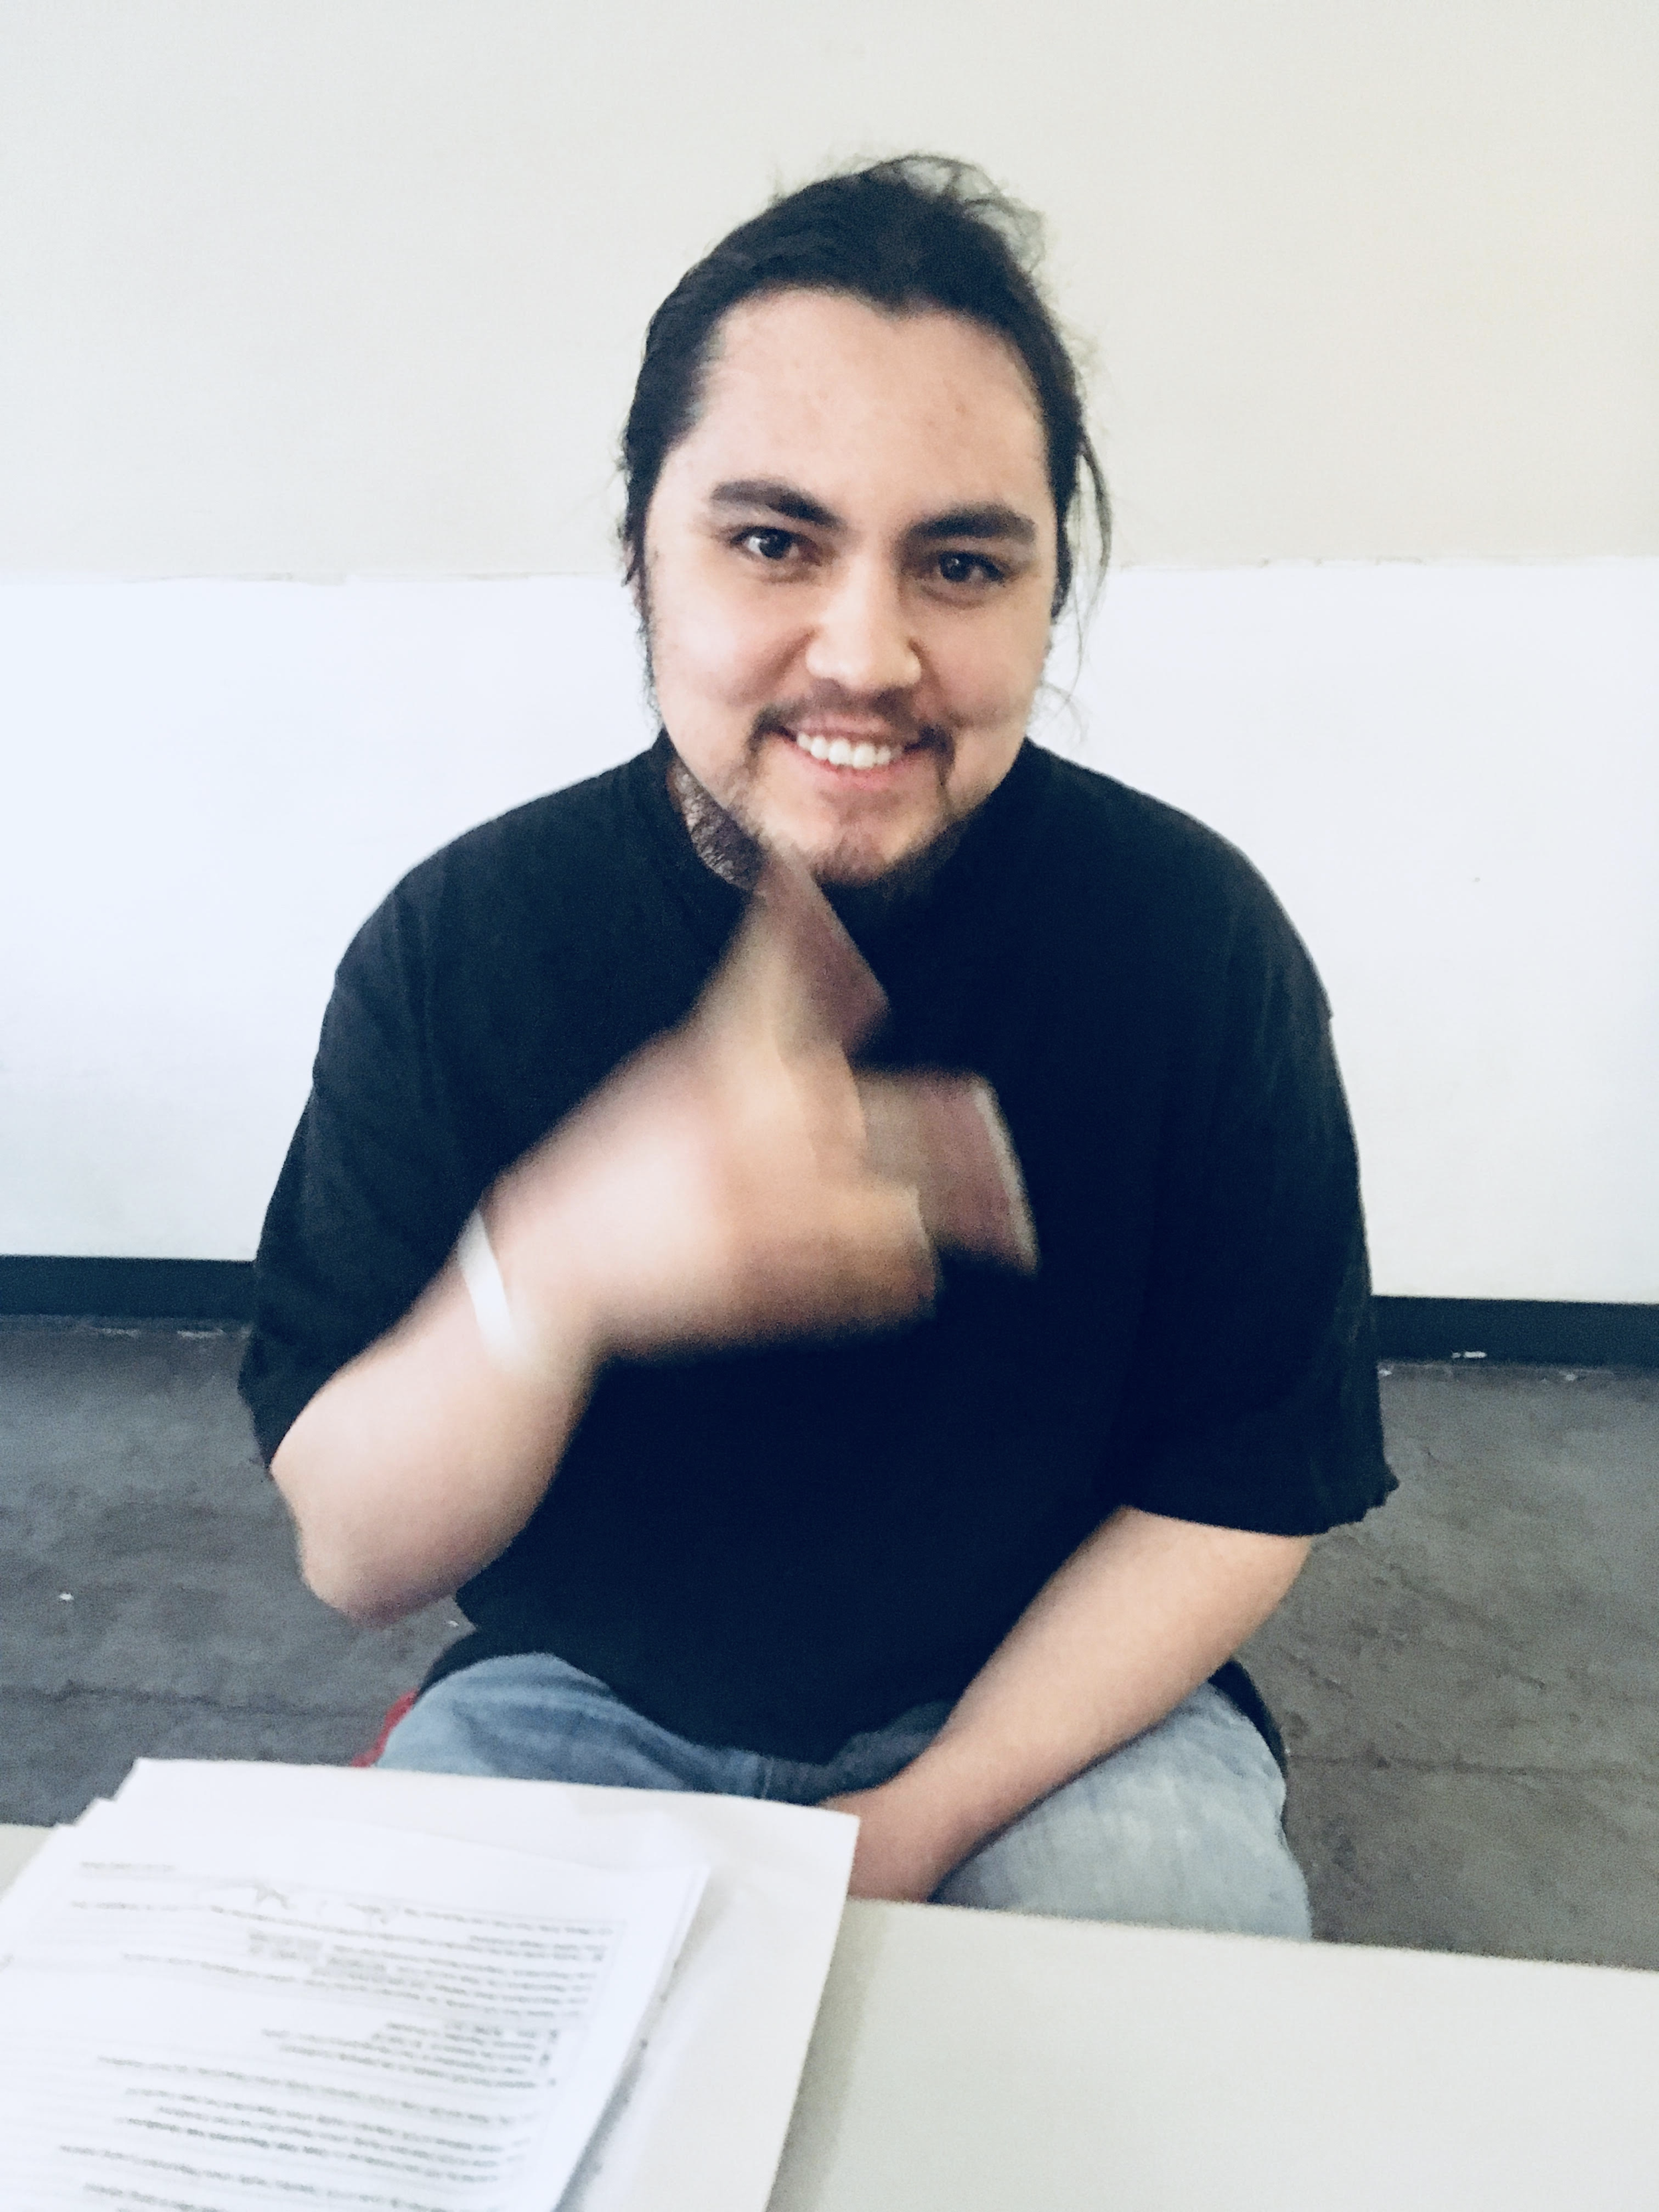 Alexis - Alexis is a 26-year-old man from Mexico who has lived in the United States since he was a baby. Alexis was granted a bond, but unfortunately lacked the resources to pay it, and had to fight his immigration case from detention. After spending almost a year and a half in ICE custody, the immigration judge granted Alexis asylum. Notwithstanding his grant of asylum, the government sought to continue to detain Alexis while it pursued an appeal in his case. With your help, Alexis was finally able to leave ICE custody on March 15, 2018, while ICE pursues its appeal. Alexis is so excited to start putting his life back together after his extended detention. He is especially looking forward to starting GED courses and getting a job. Alexis is grateful to all of you for your help in freeing him!